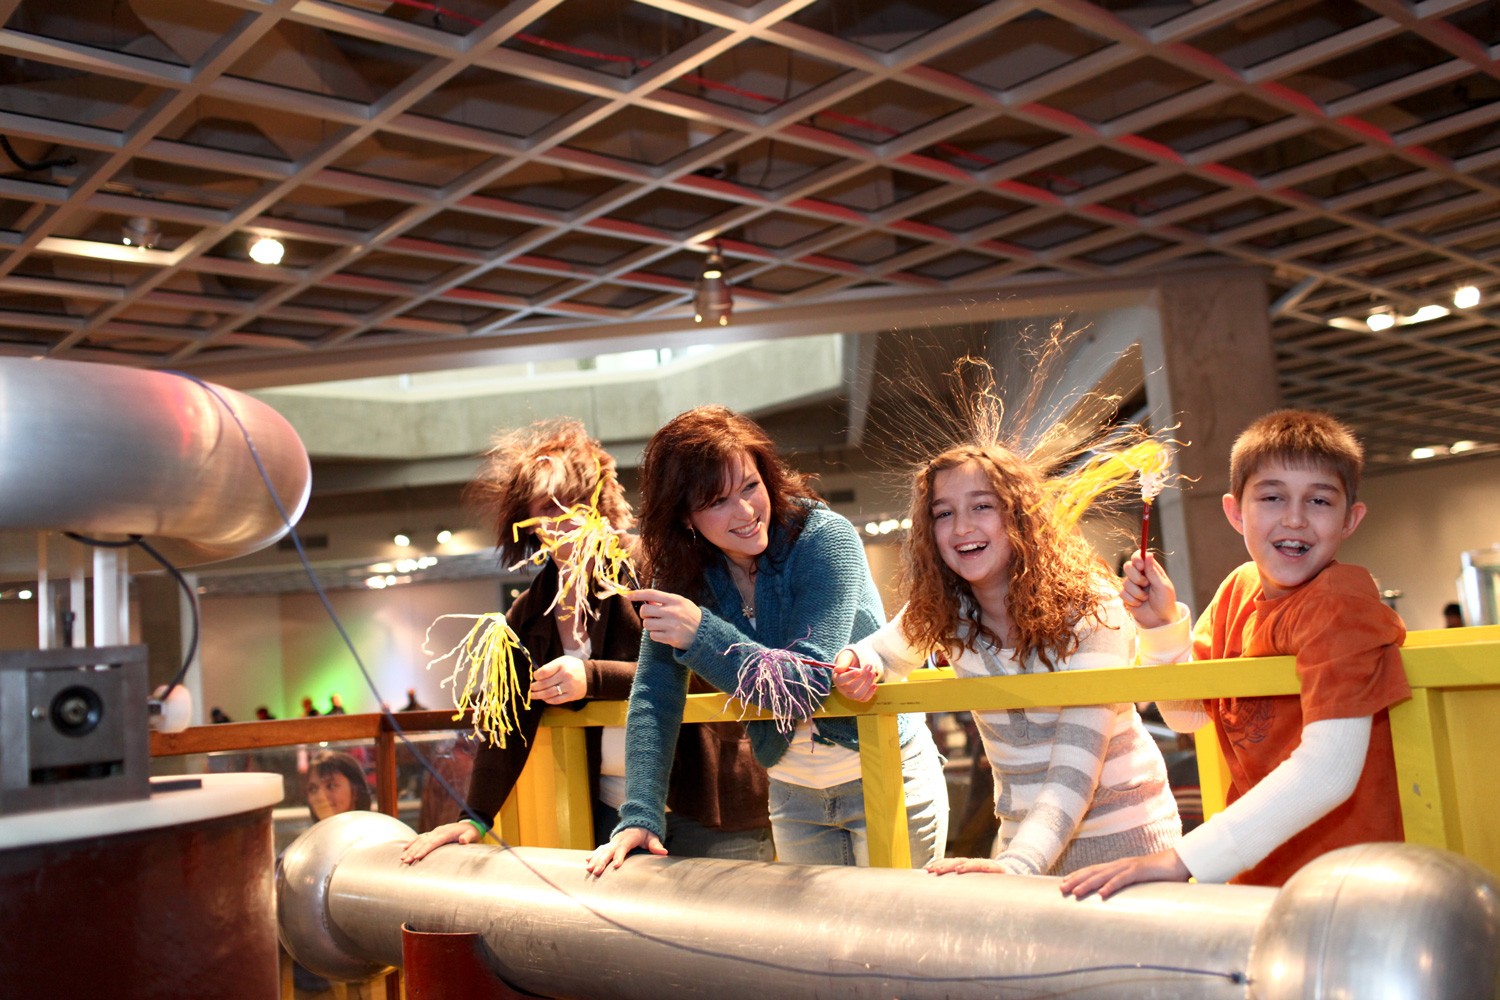 Bridge of Fire Exhibit at Great Lakes Science Center